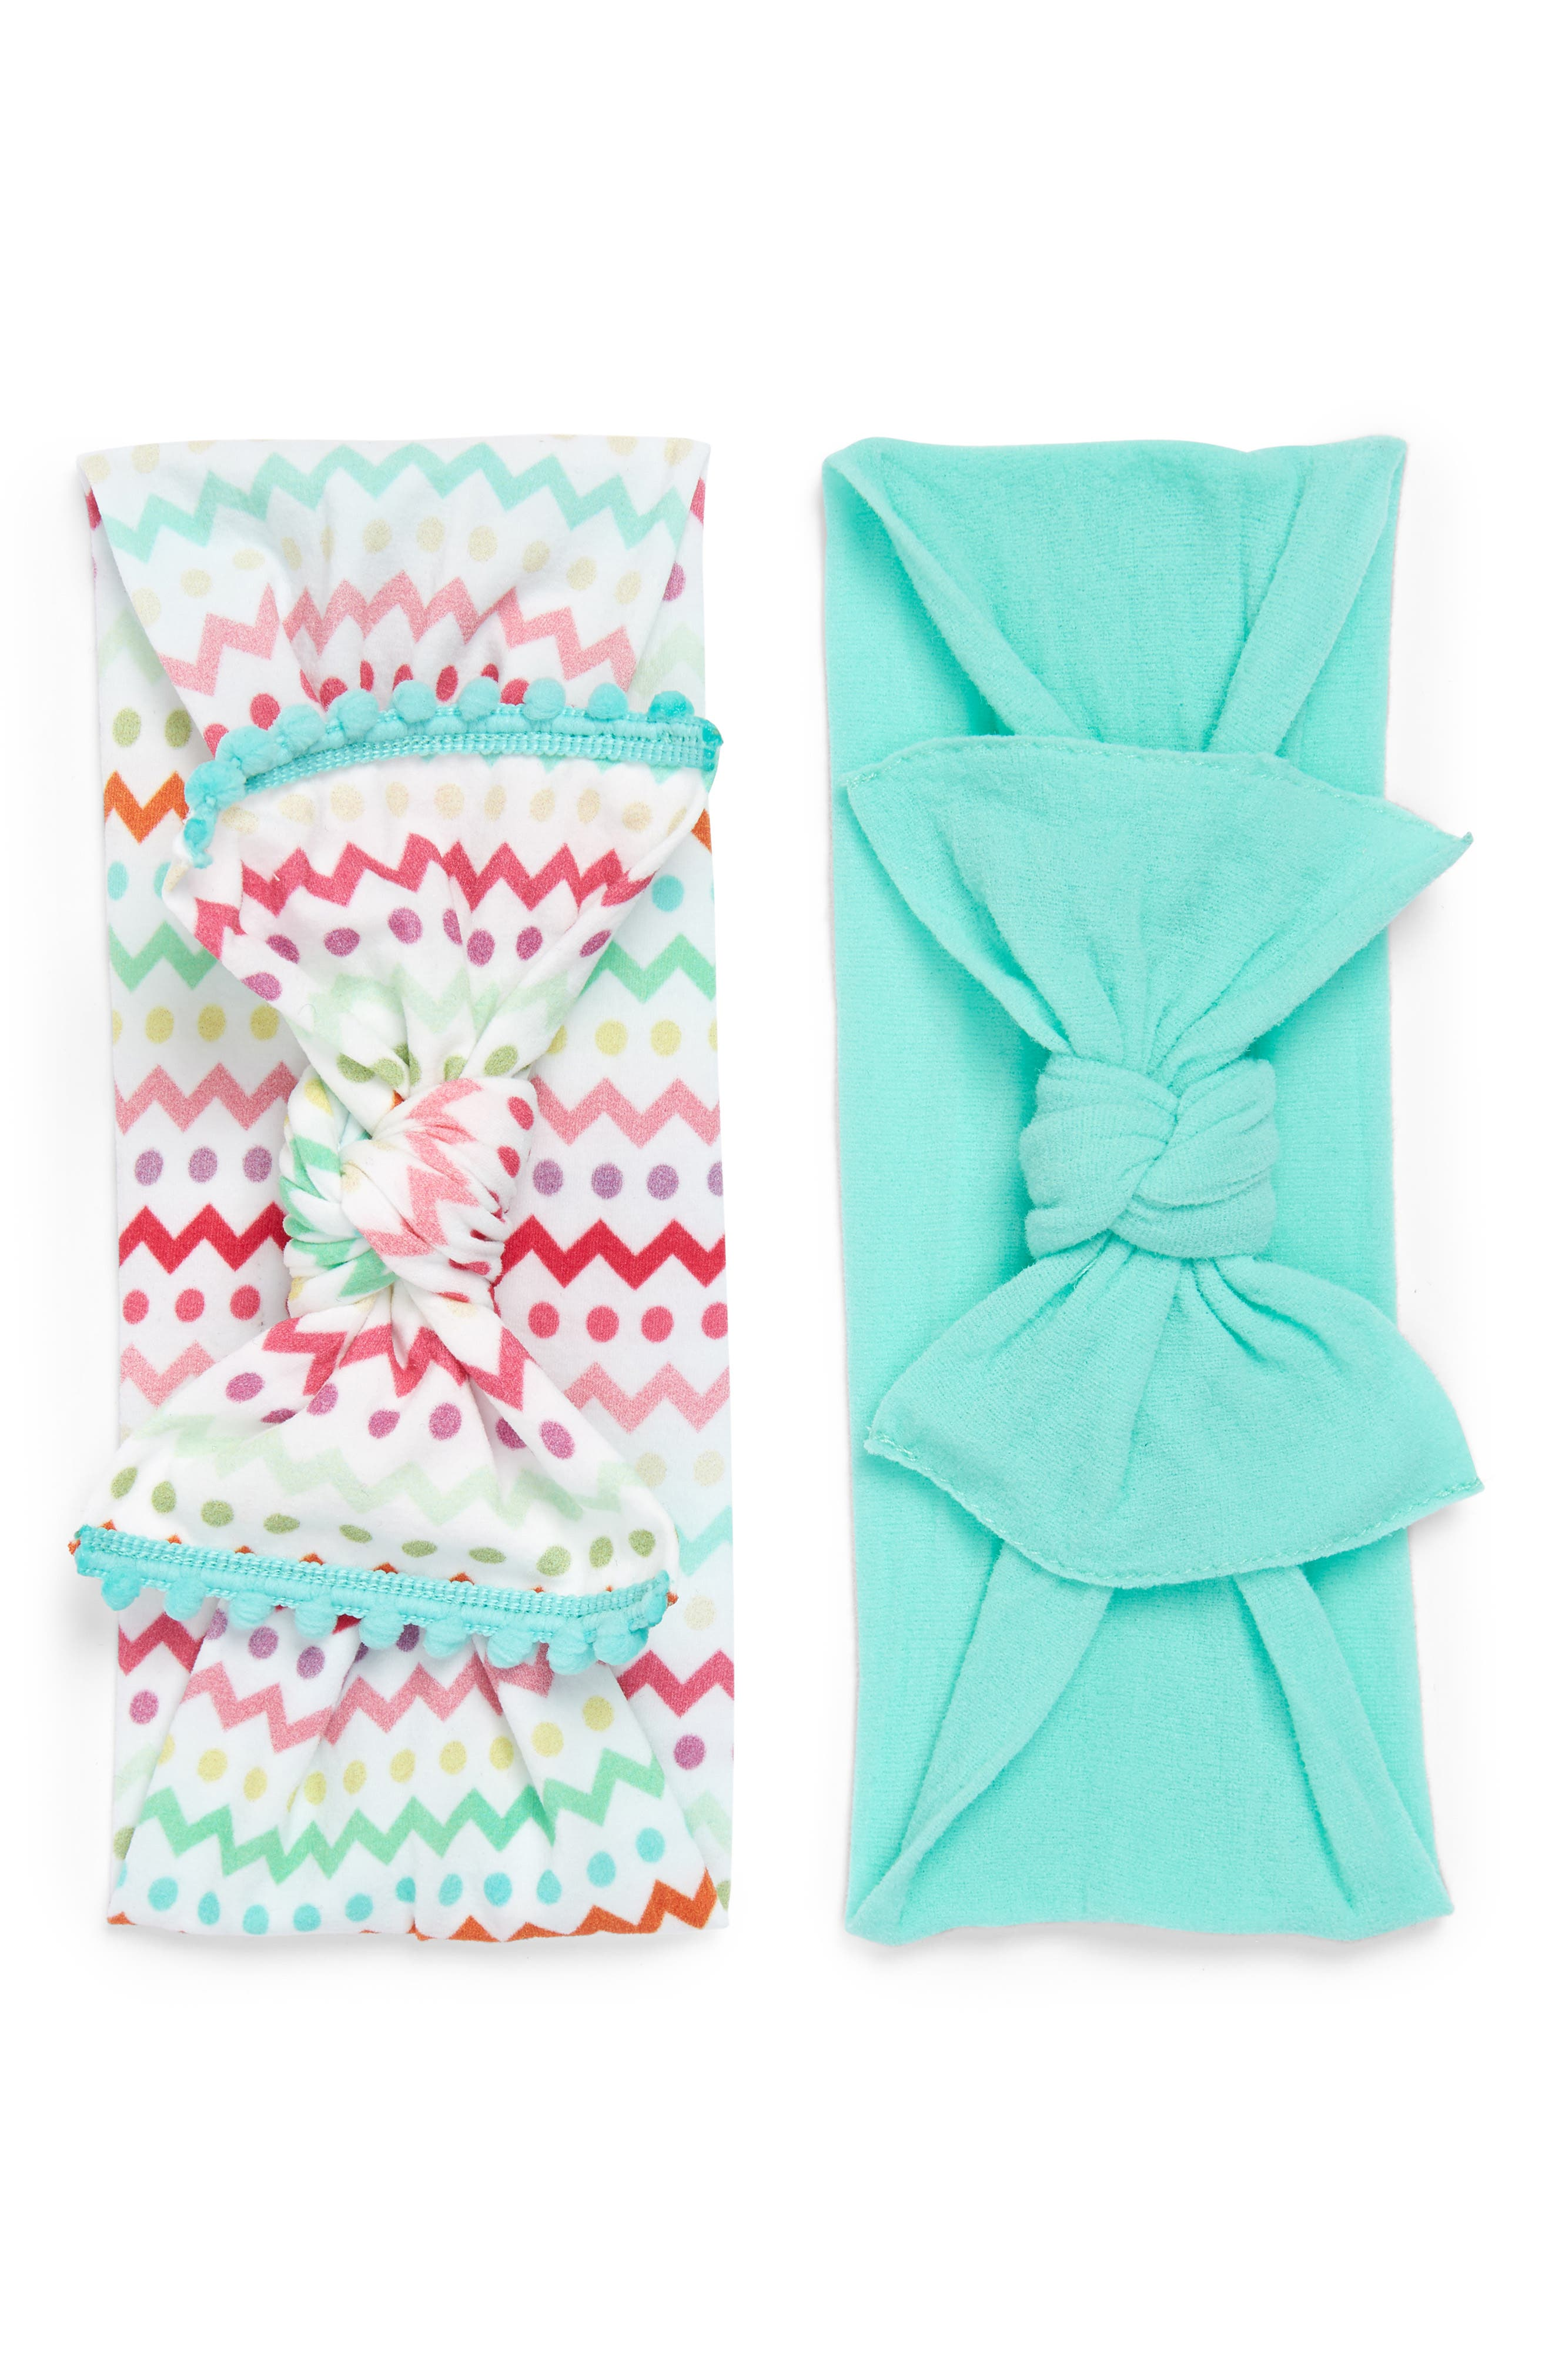 BABY BLING 2-Pack Knotted Headbands, Main, color, EASTER STRIPES/ MINT